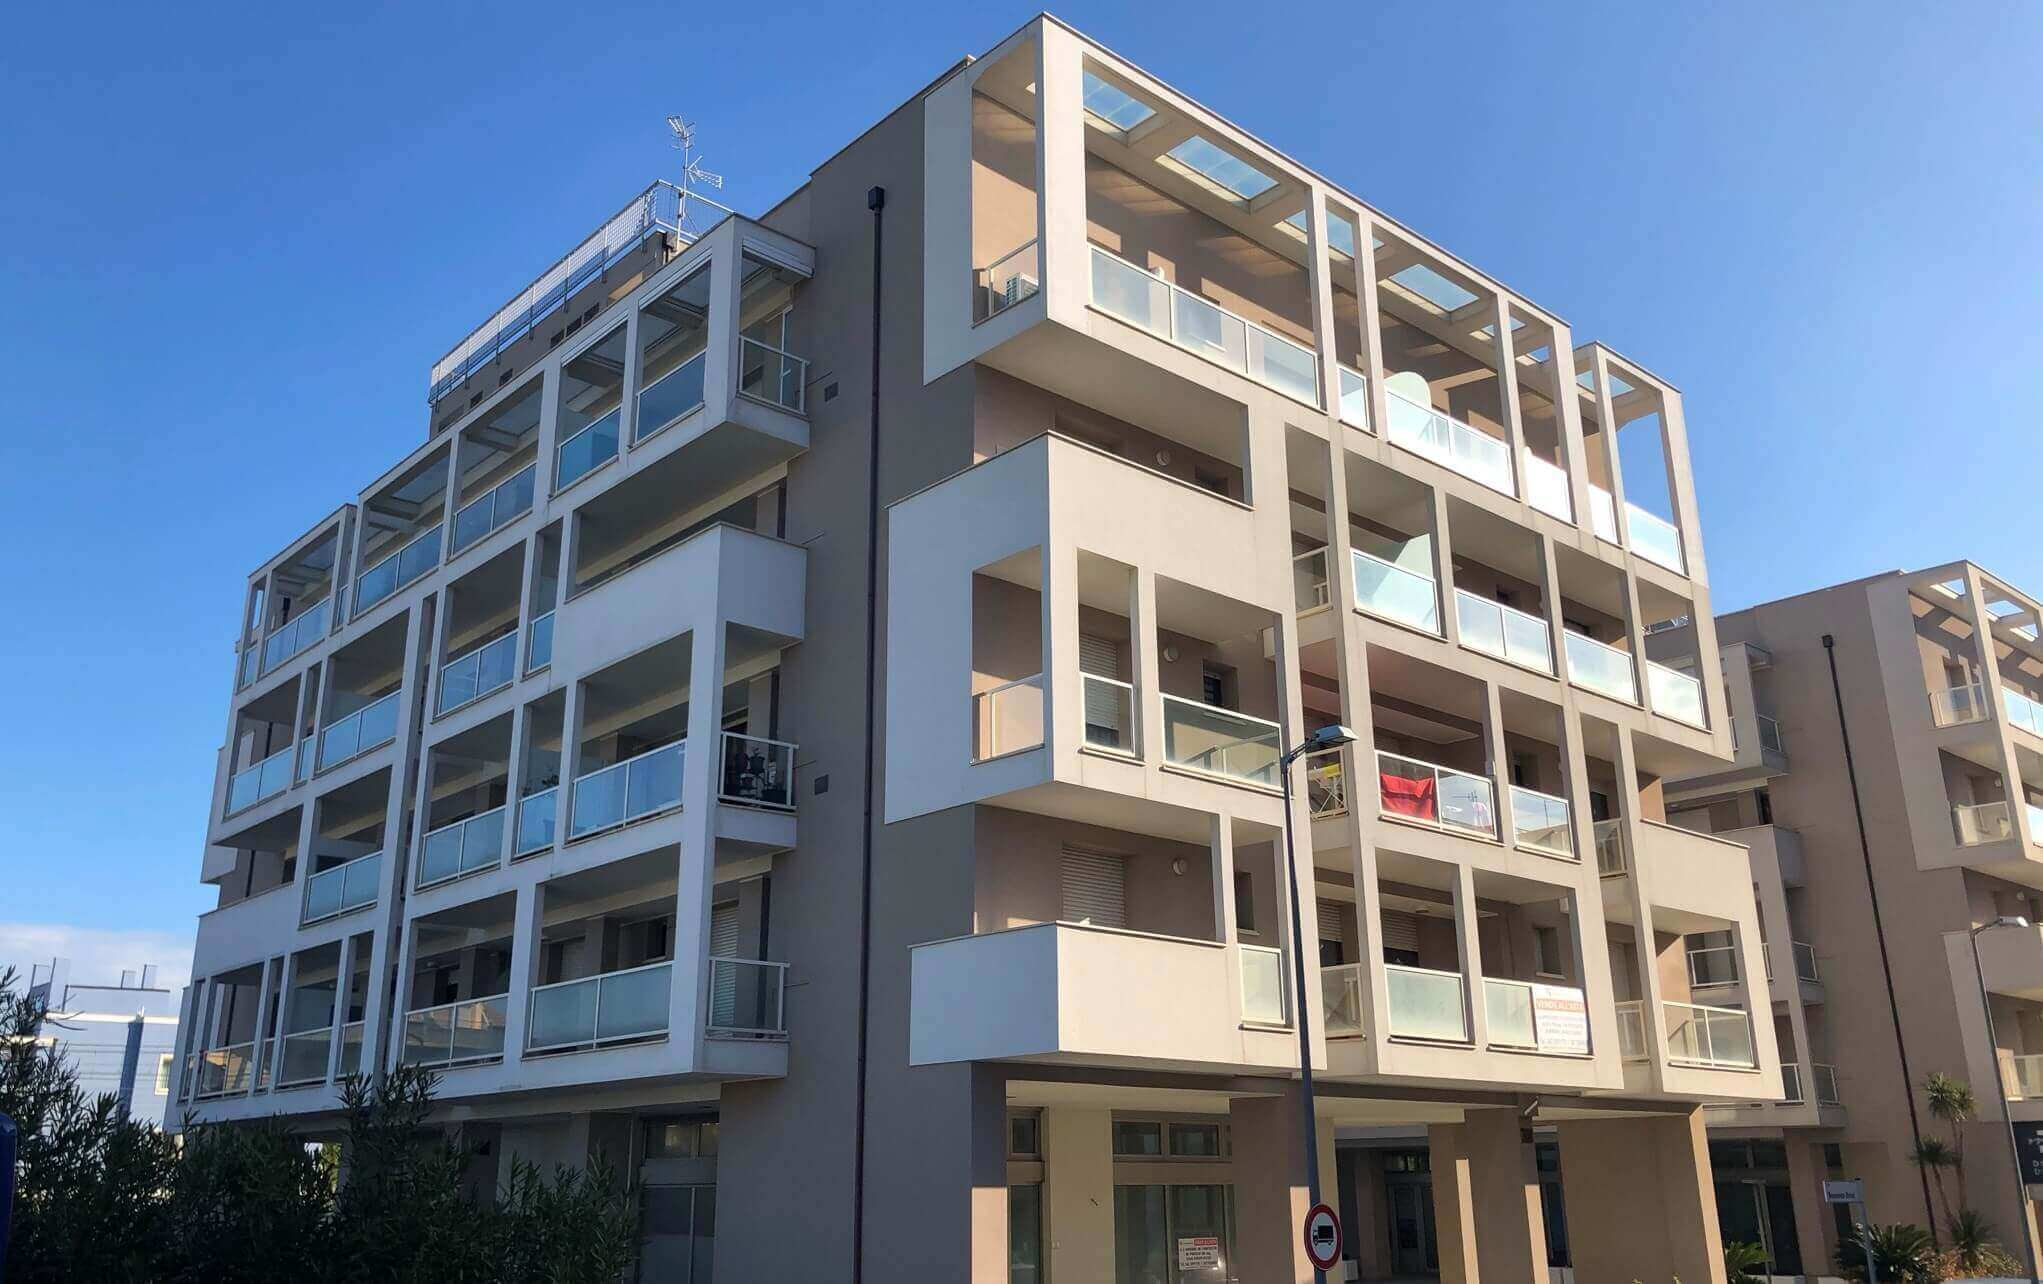 <p>Grottamare (AP) <strong>Via Parini</strong><br />